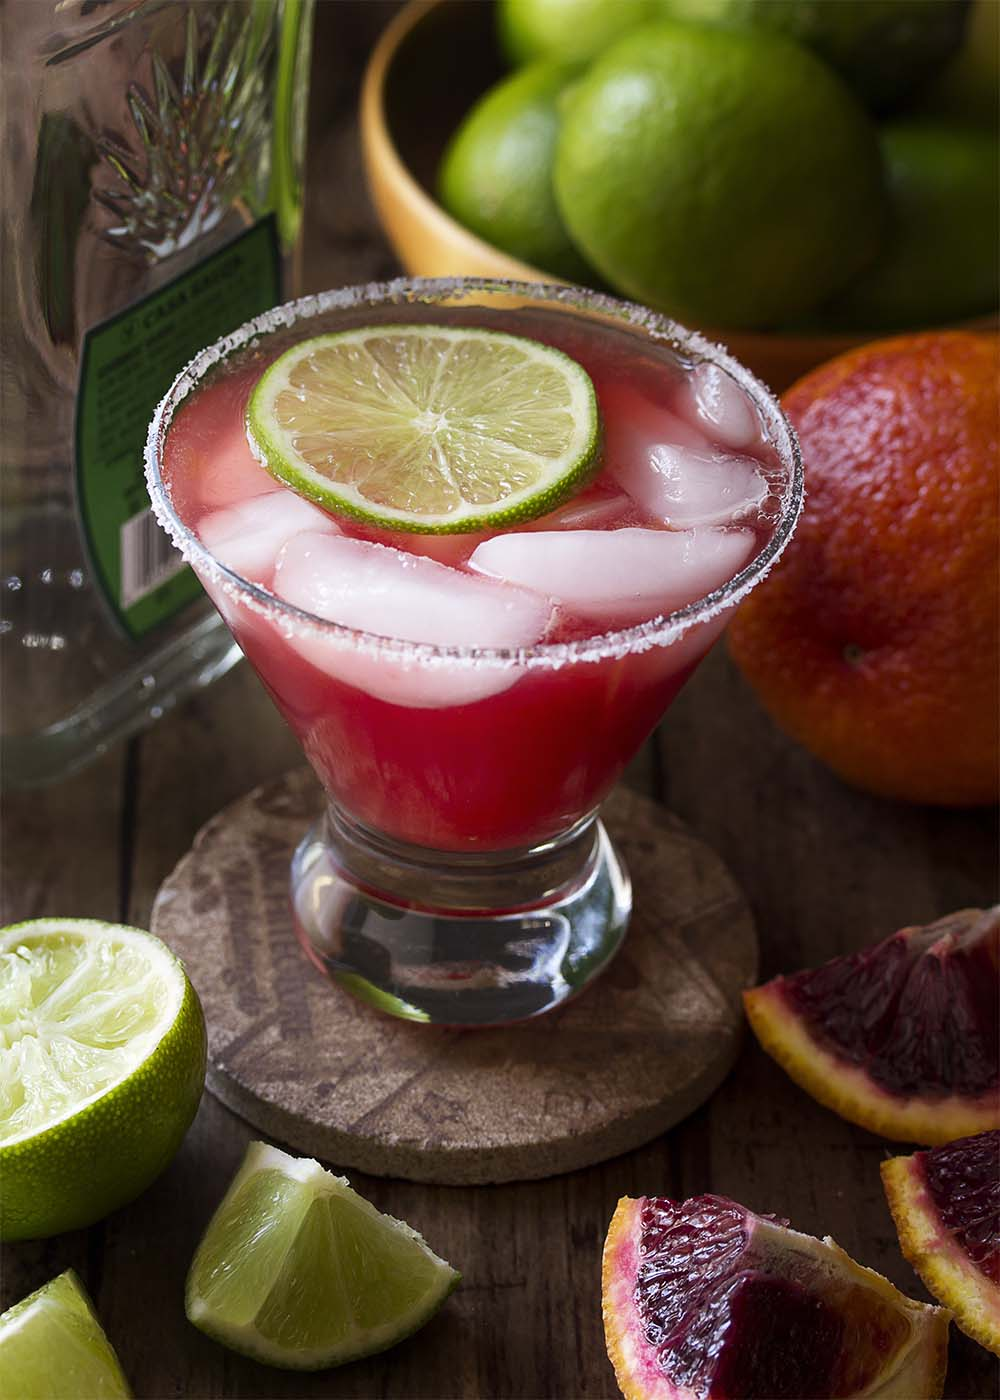 A blood orange margarita in a glass with a slice of lime. Limes and blood oranges scattered around.